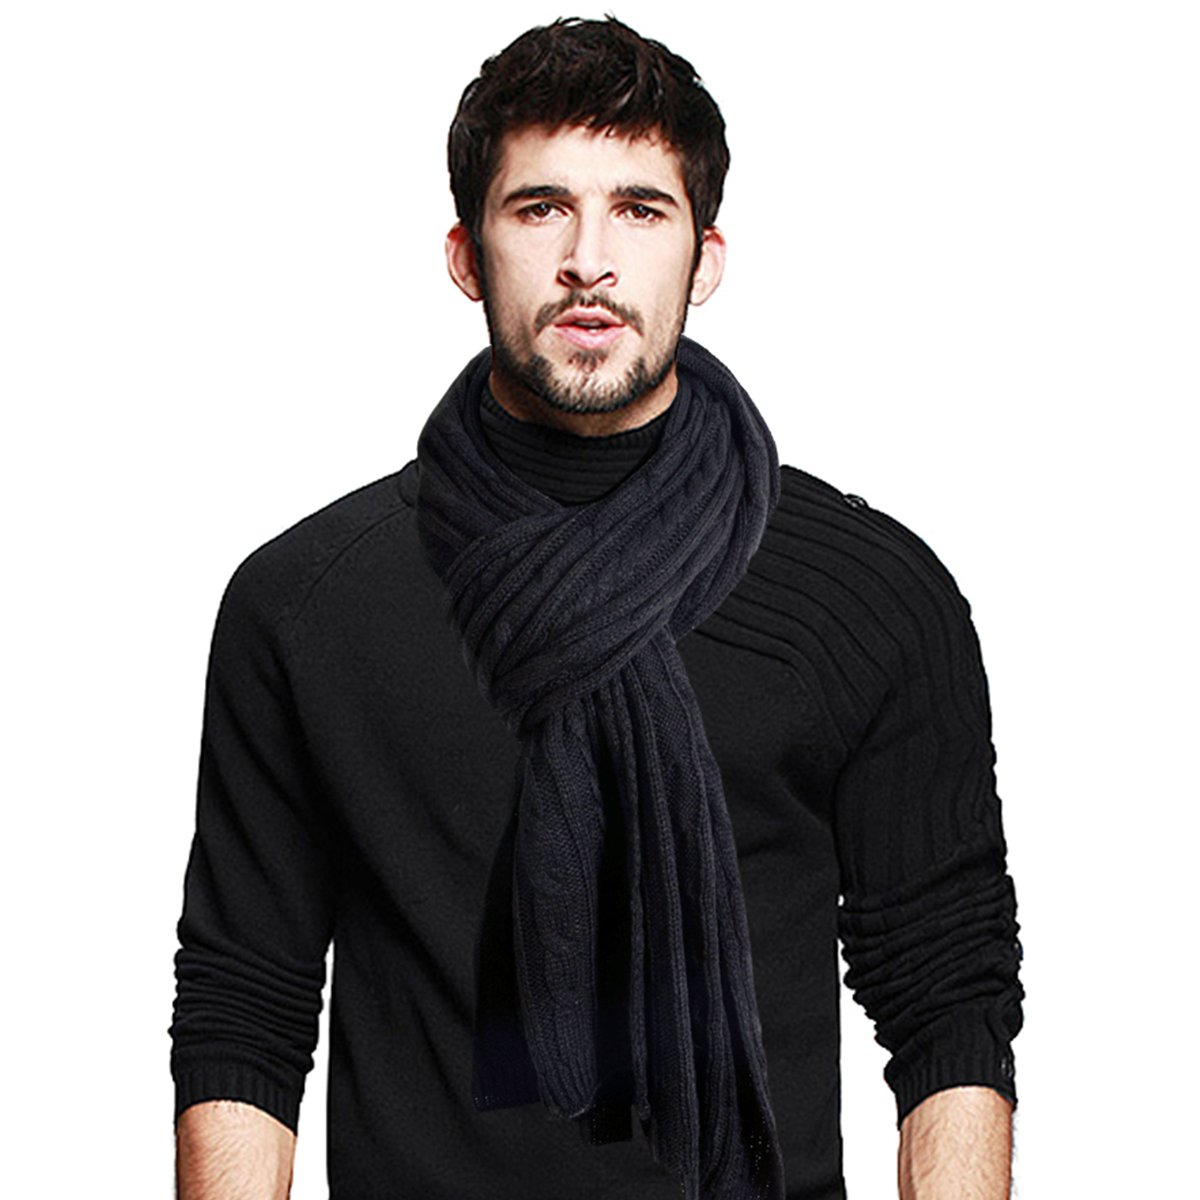 Men's Long Scarf Soft Warm Thick Knit Winter Scarves (Black& Grey) JESSE · RENA CF-E5002-Black